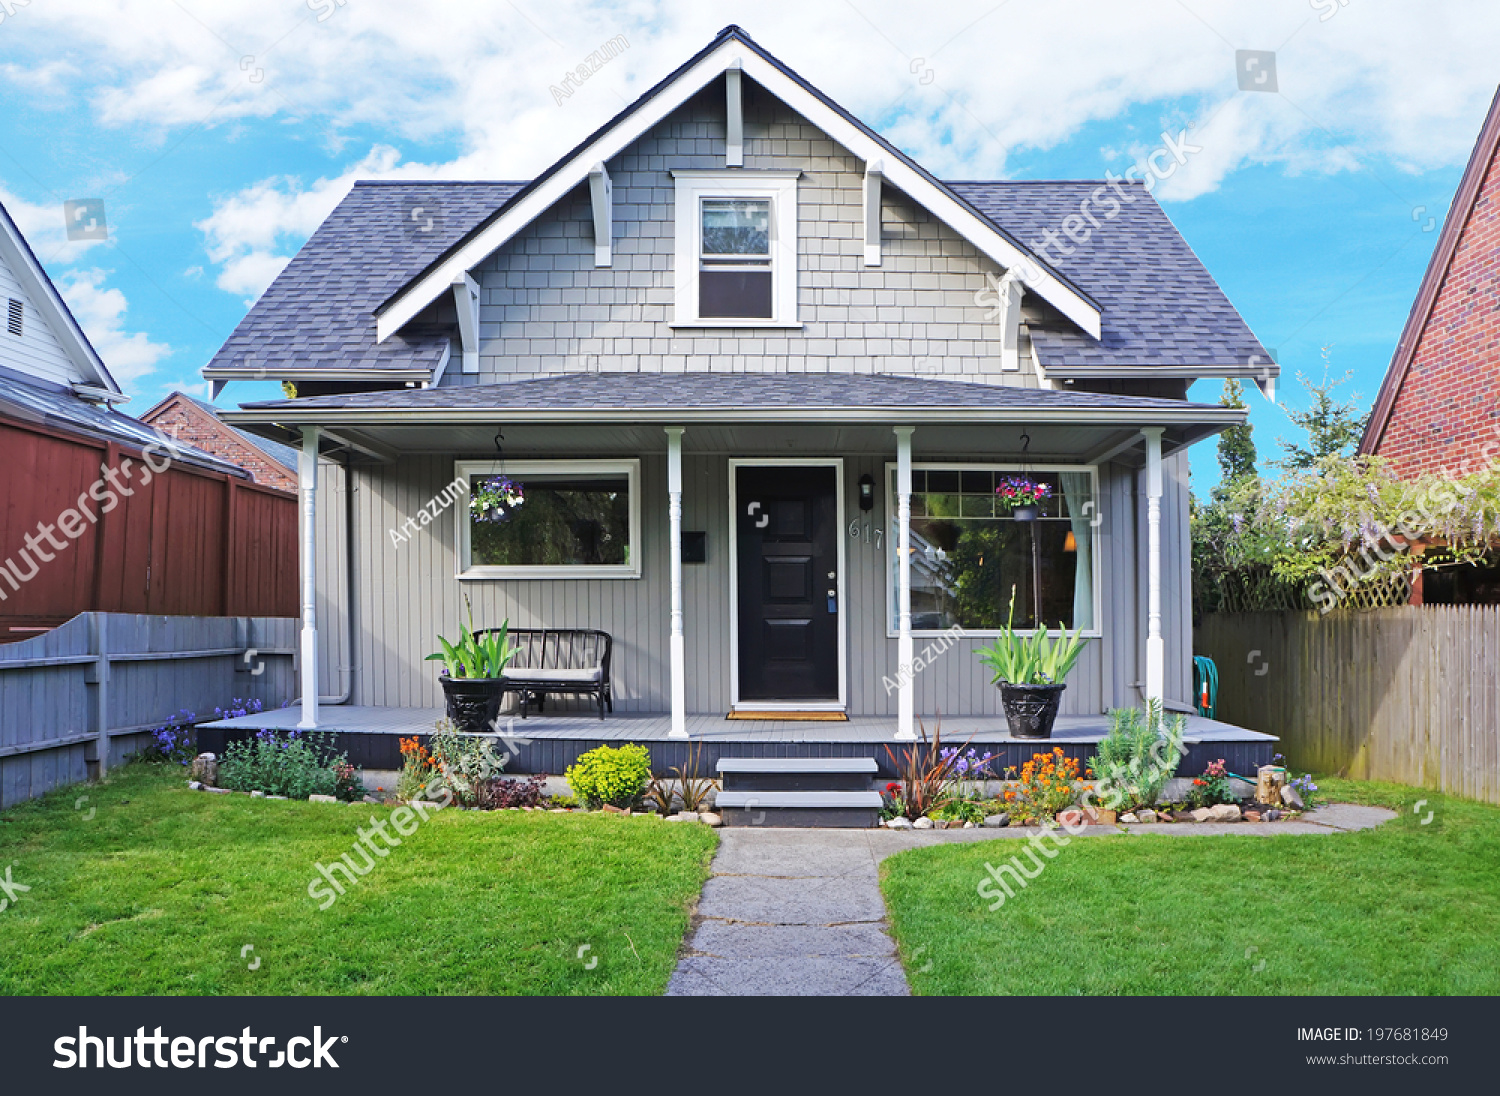 Small old house entrance porch decorated stock photo for Classic house fronts